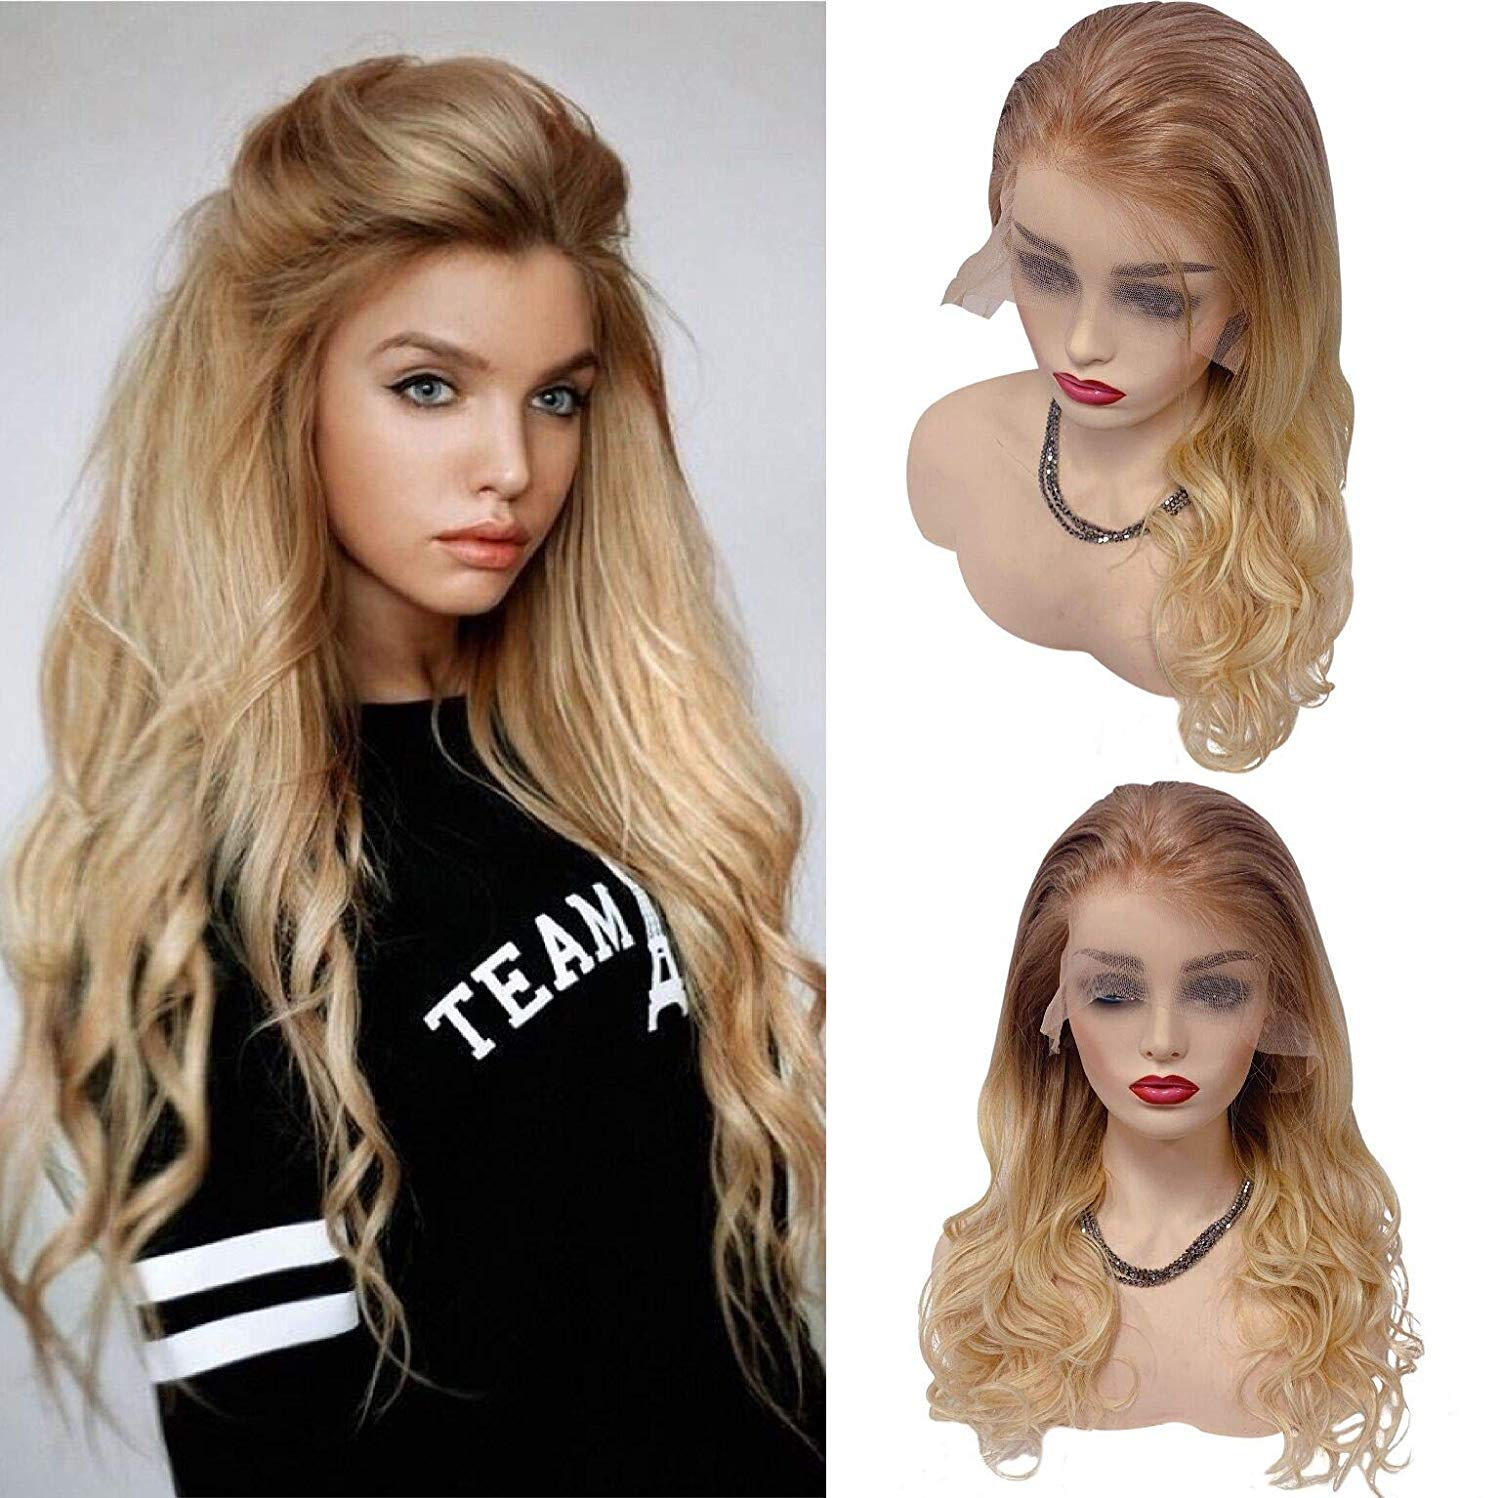 613 Blonde Human Hair Lace Front Wigs Natural Wave For Women 24 Inches Golden Brown Omber 13x4 Pre Plucked 150% Density #12/613